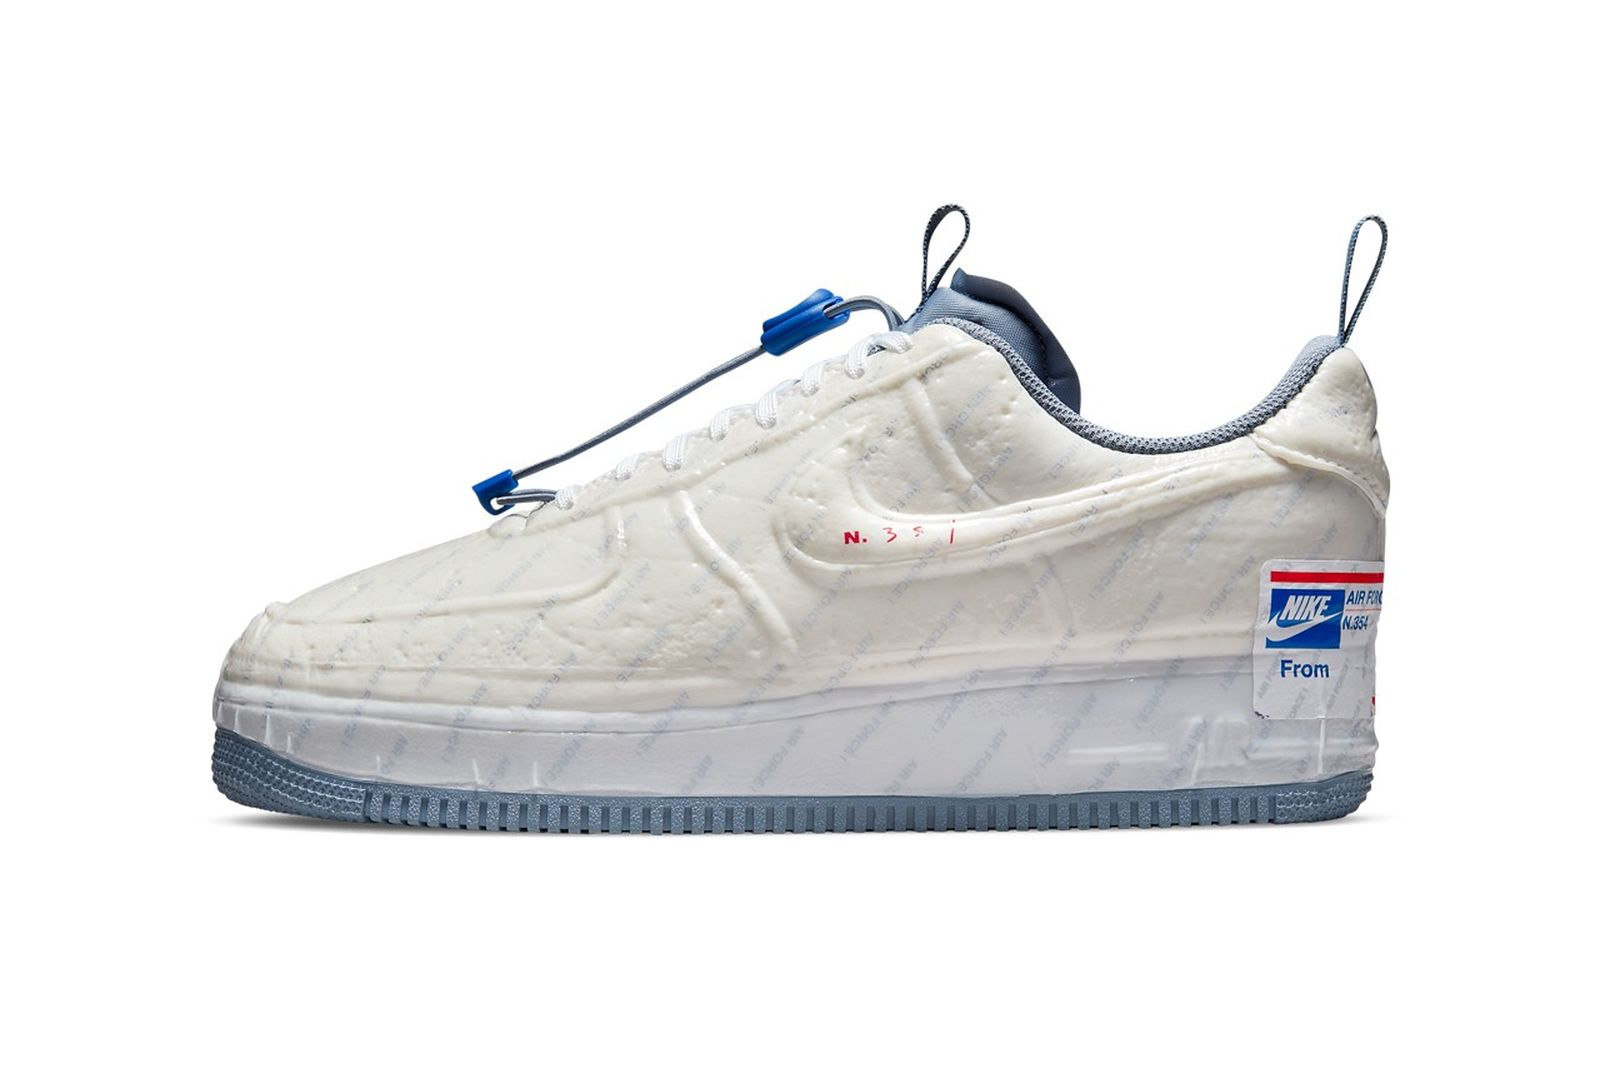 usps-nike-air-force-1-experimental-release-date-price-01